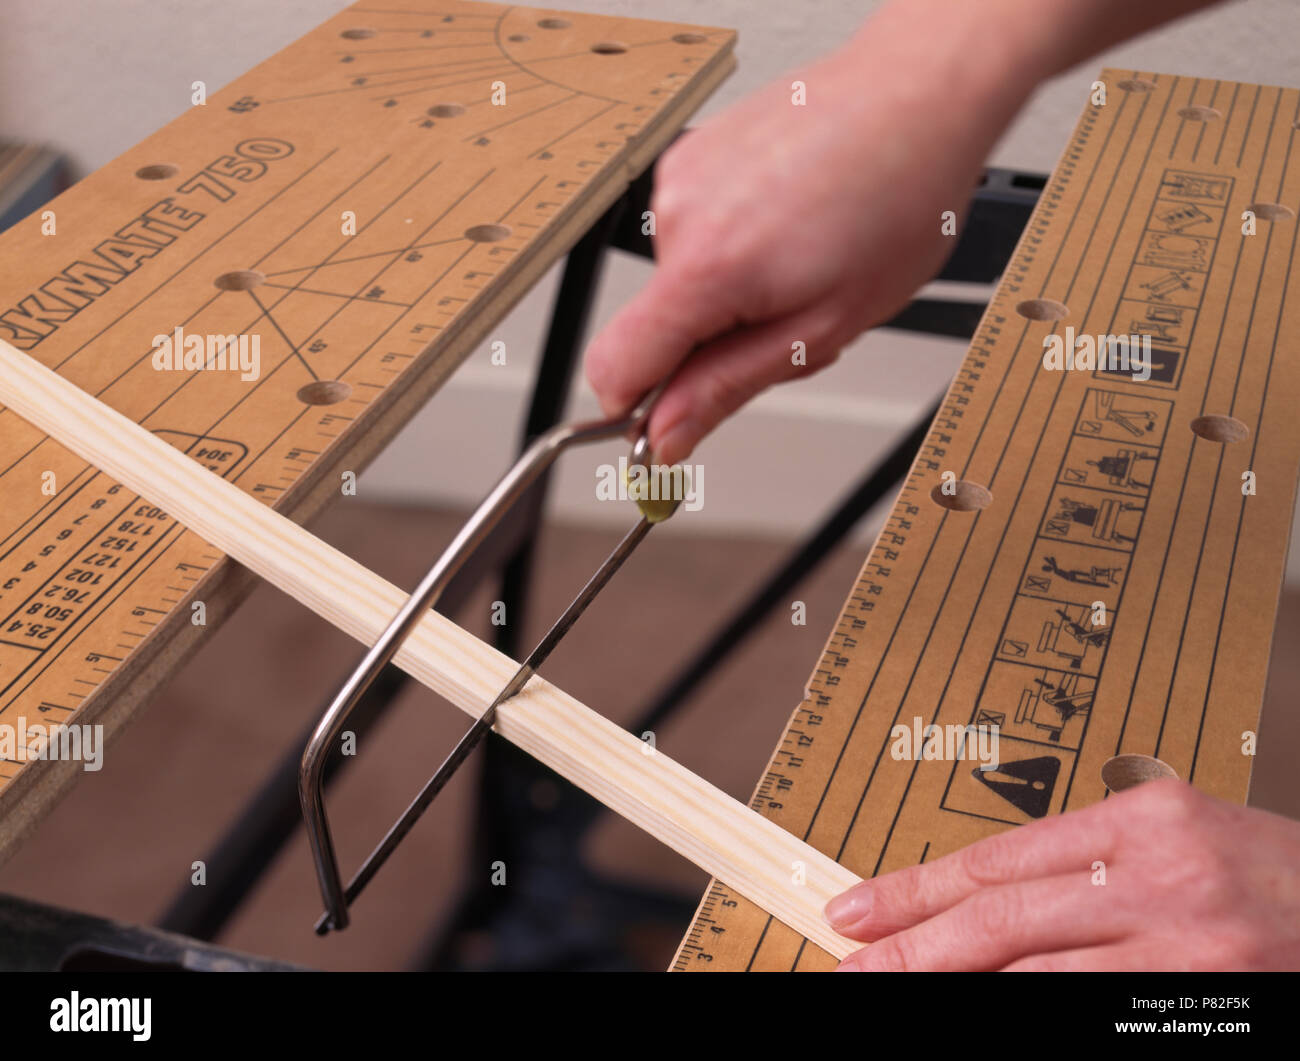 Using saw horse to cut battens to size for diy project - Stock Image